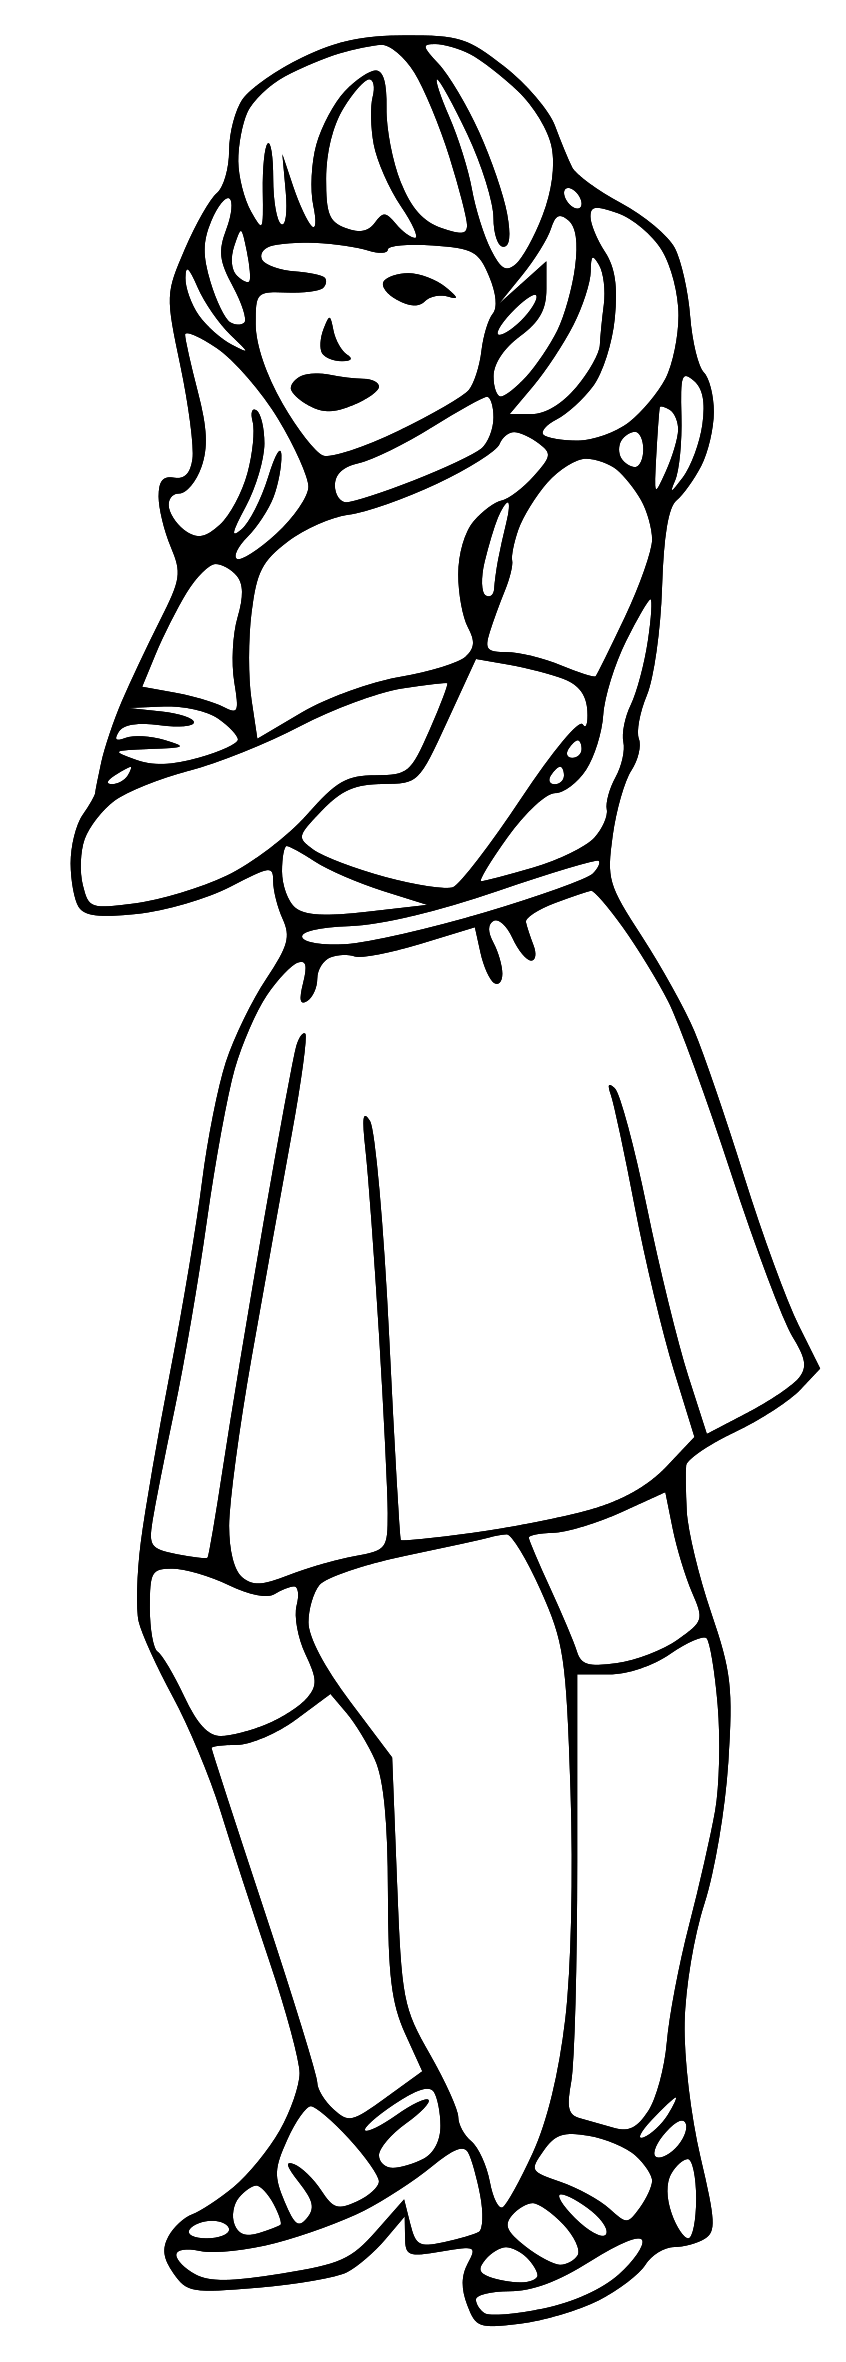 846x2362 girl black and white clip art